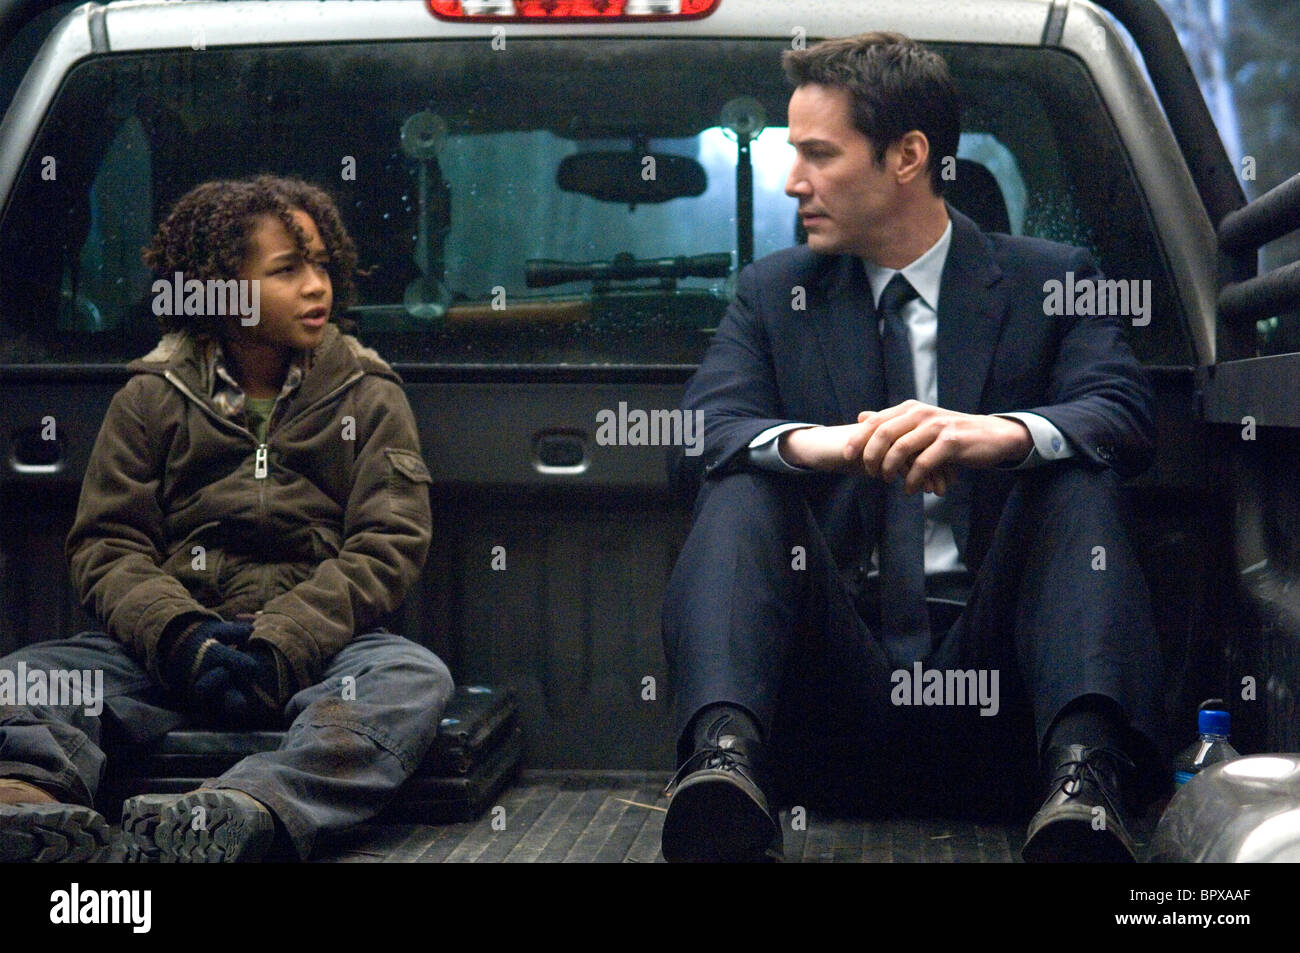 Jaden Smith Keanu Reeves The Day The Earth Stood Still 2008 Stock Photo Alamy